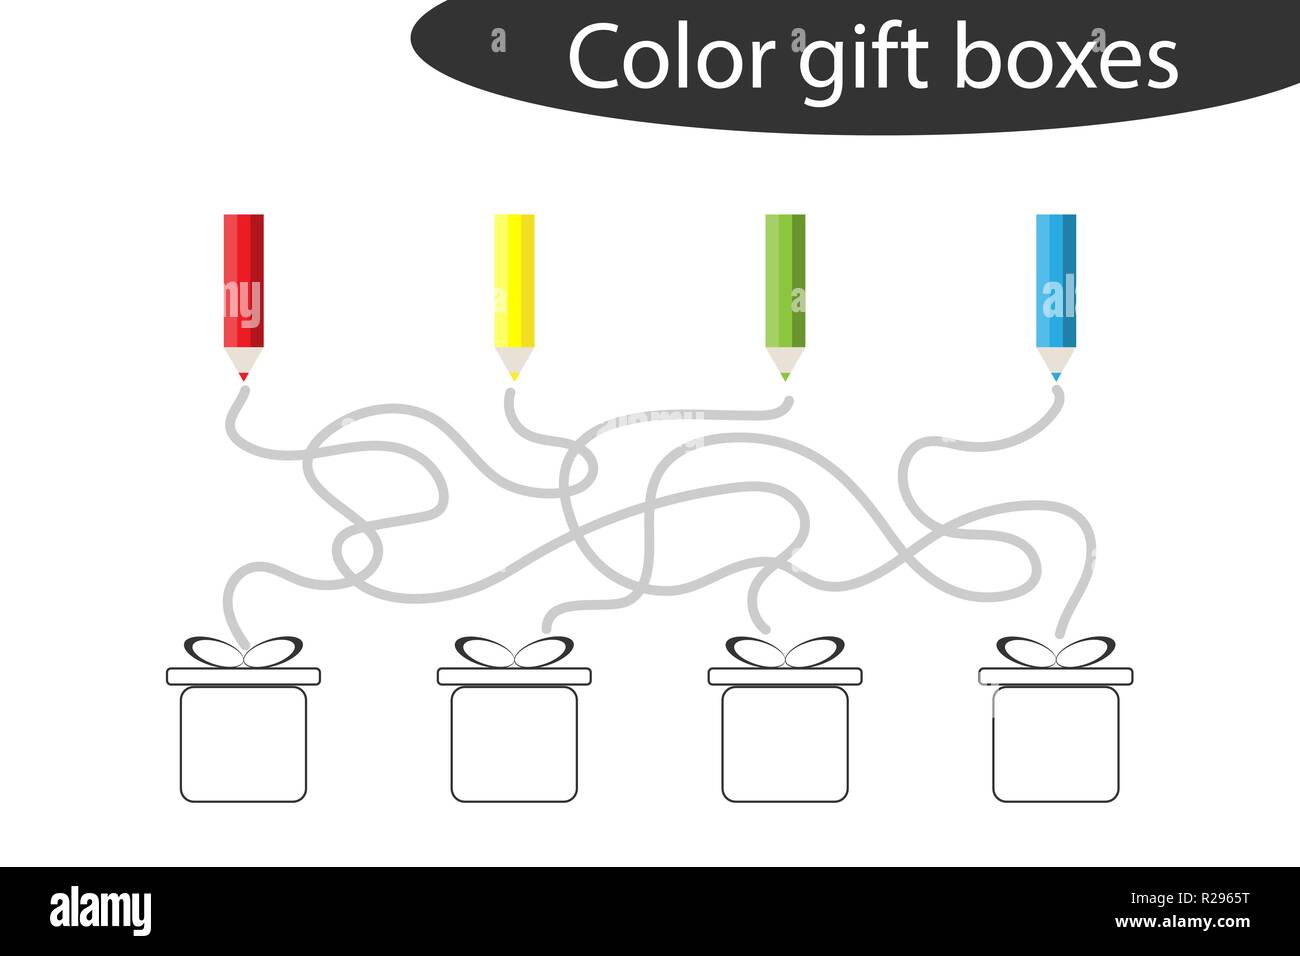 Chrismas Labyrinth Game Maze And Coloring The T Boxes